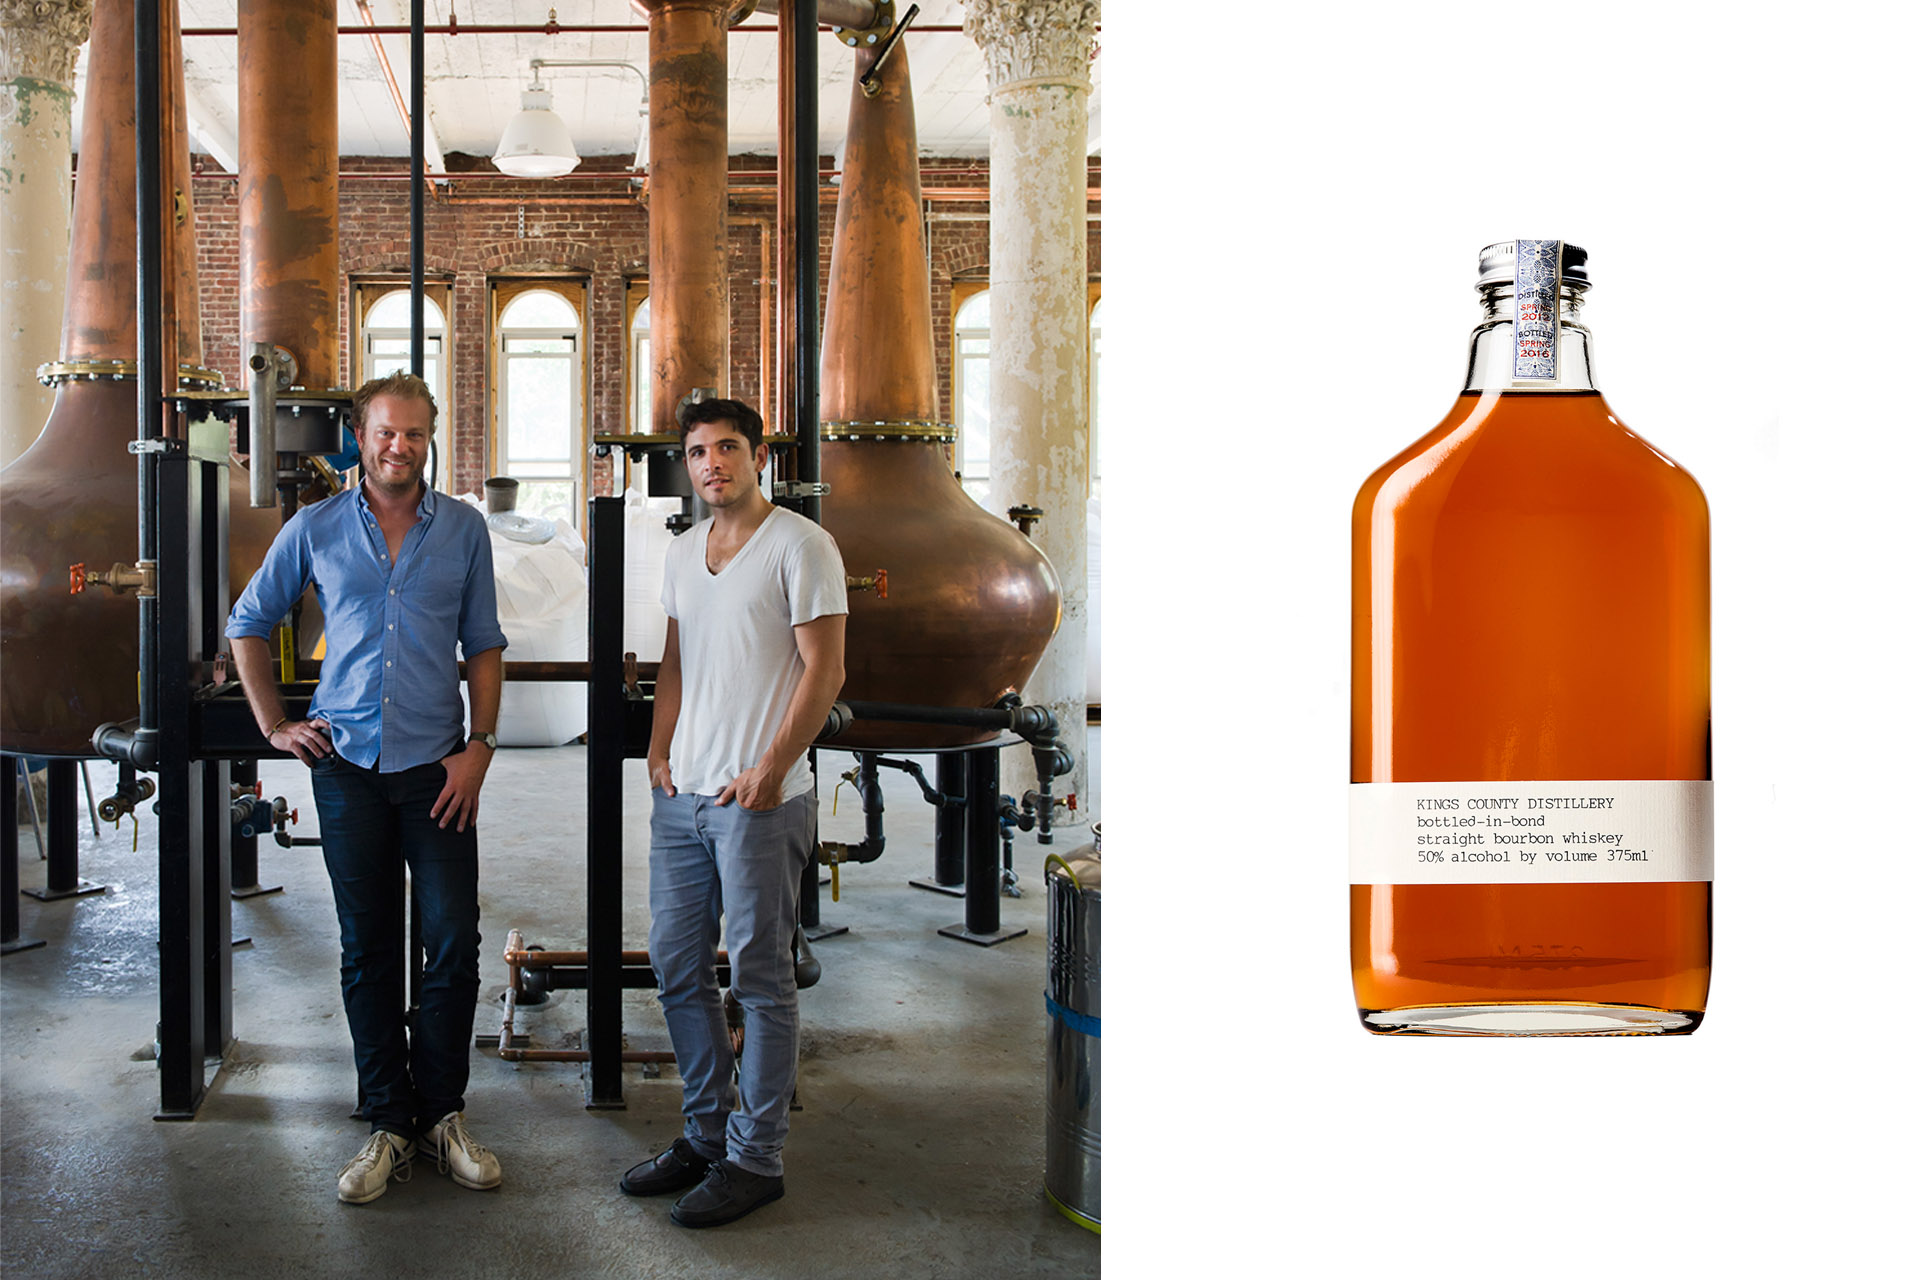 Two men and a stock image of a whiskey bottle